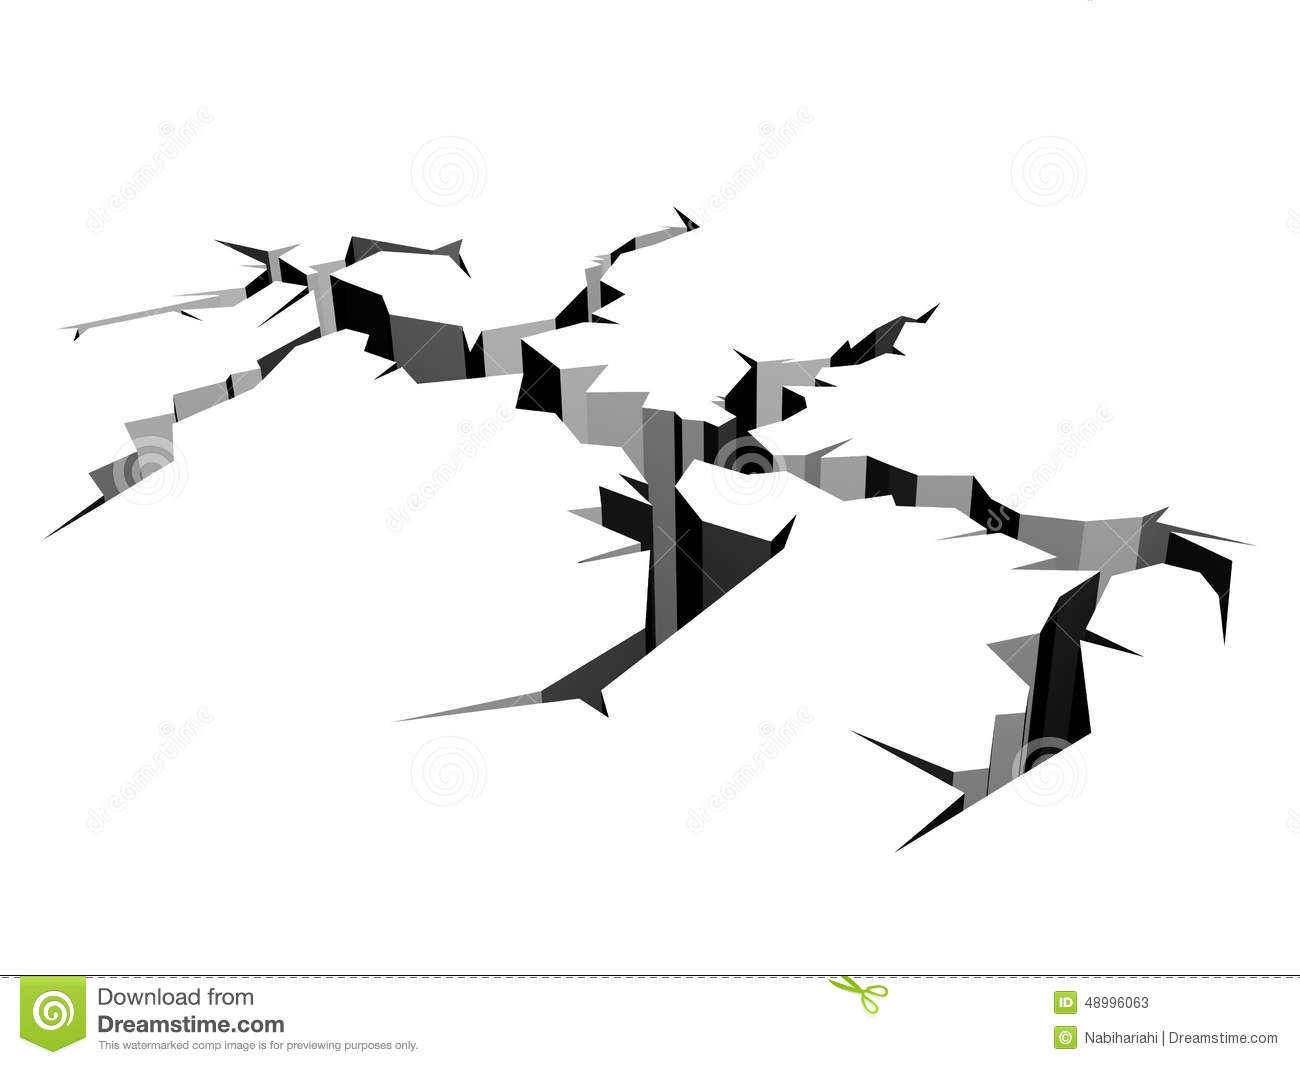 Earthquake Stock Illustration - Image: 48996063